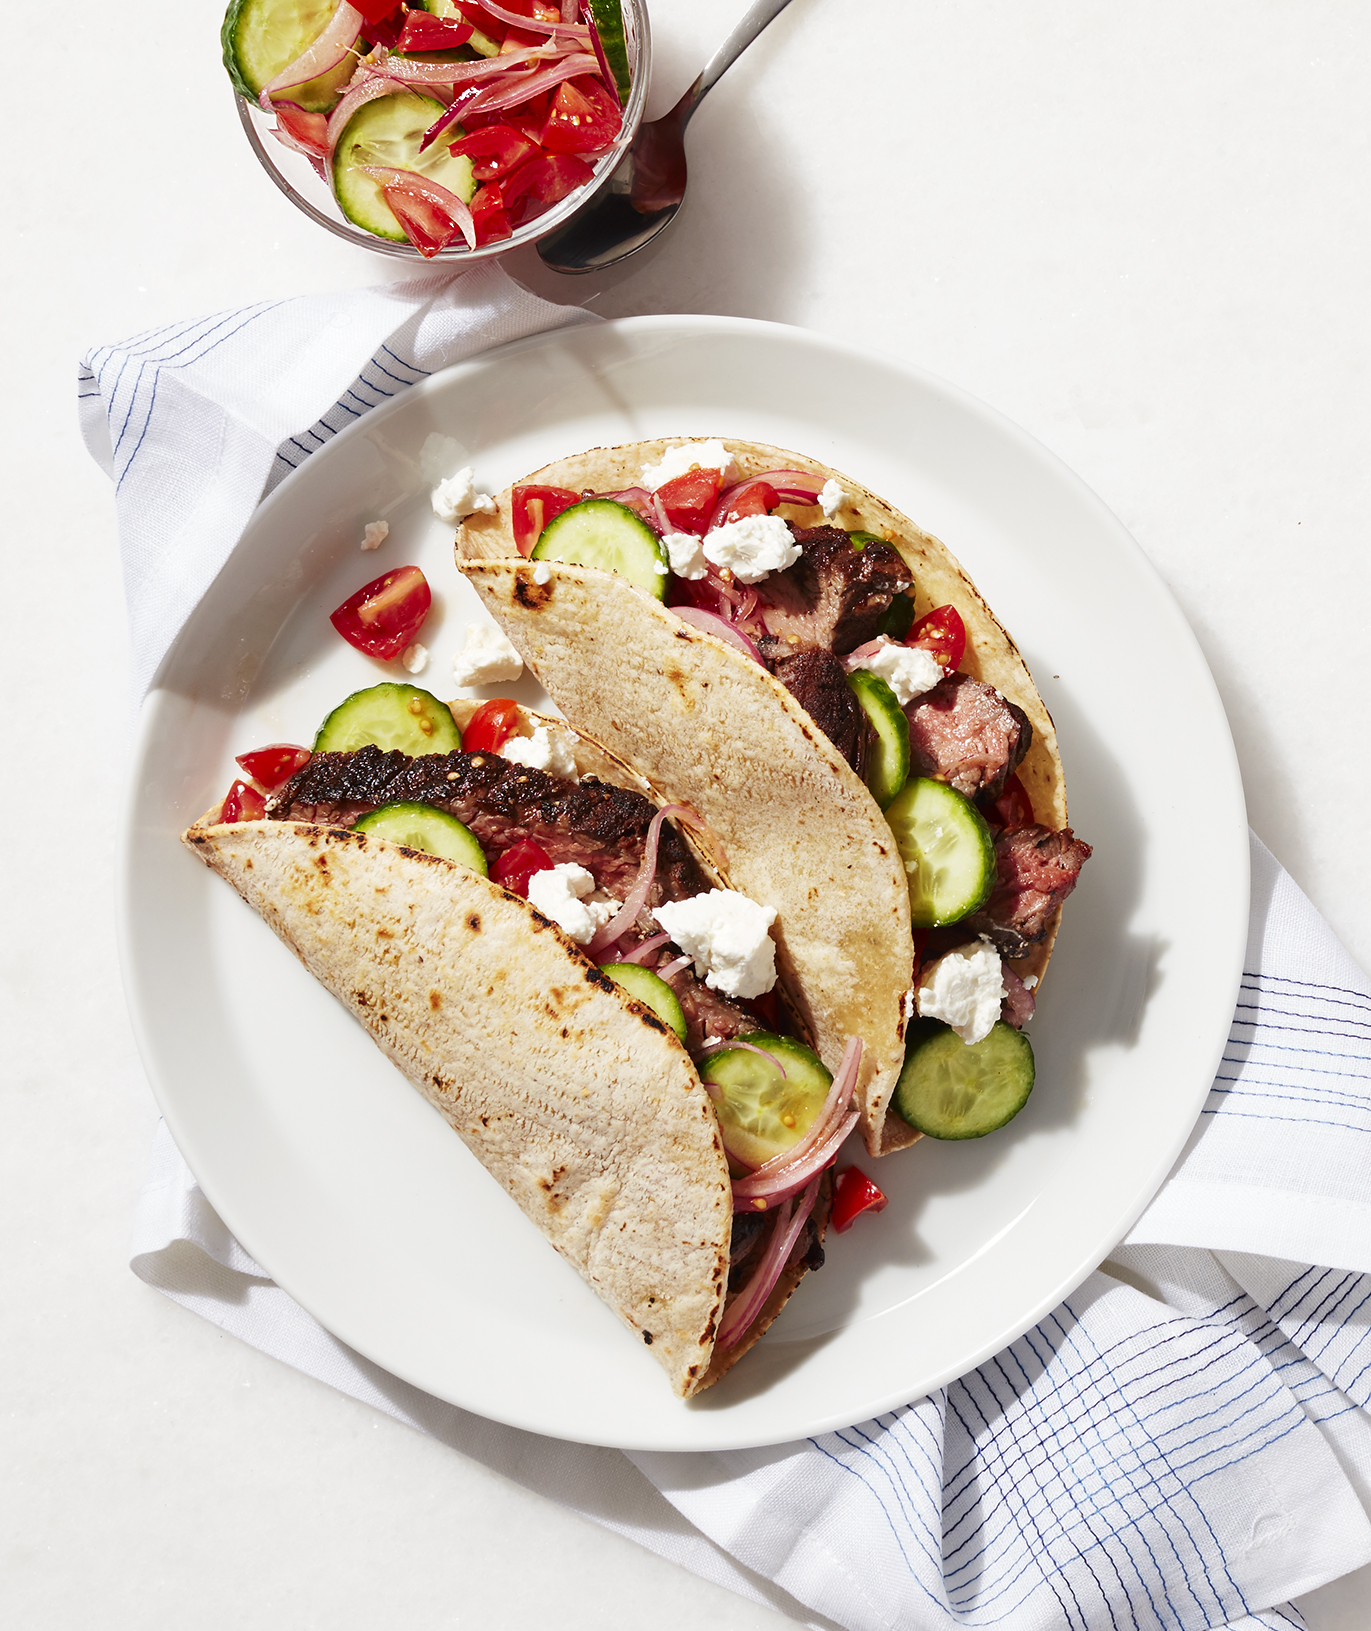 skirt-steak-tacos-greek-salsa